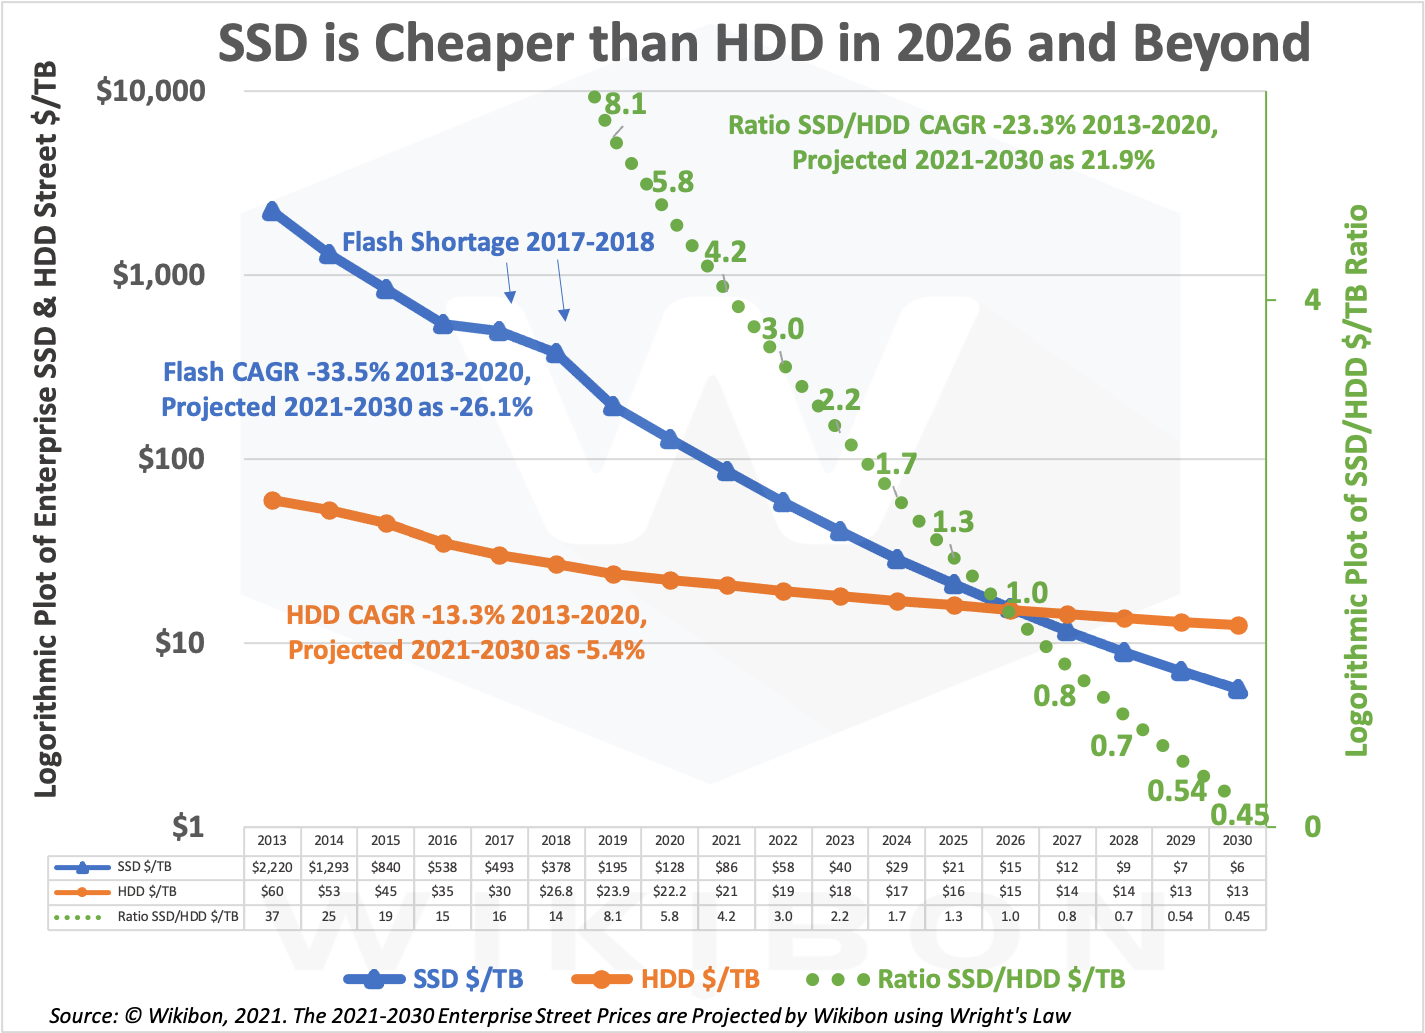 Wright's Law: Historical & Projected HDD & SSD Pricing